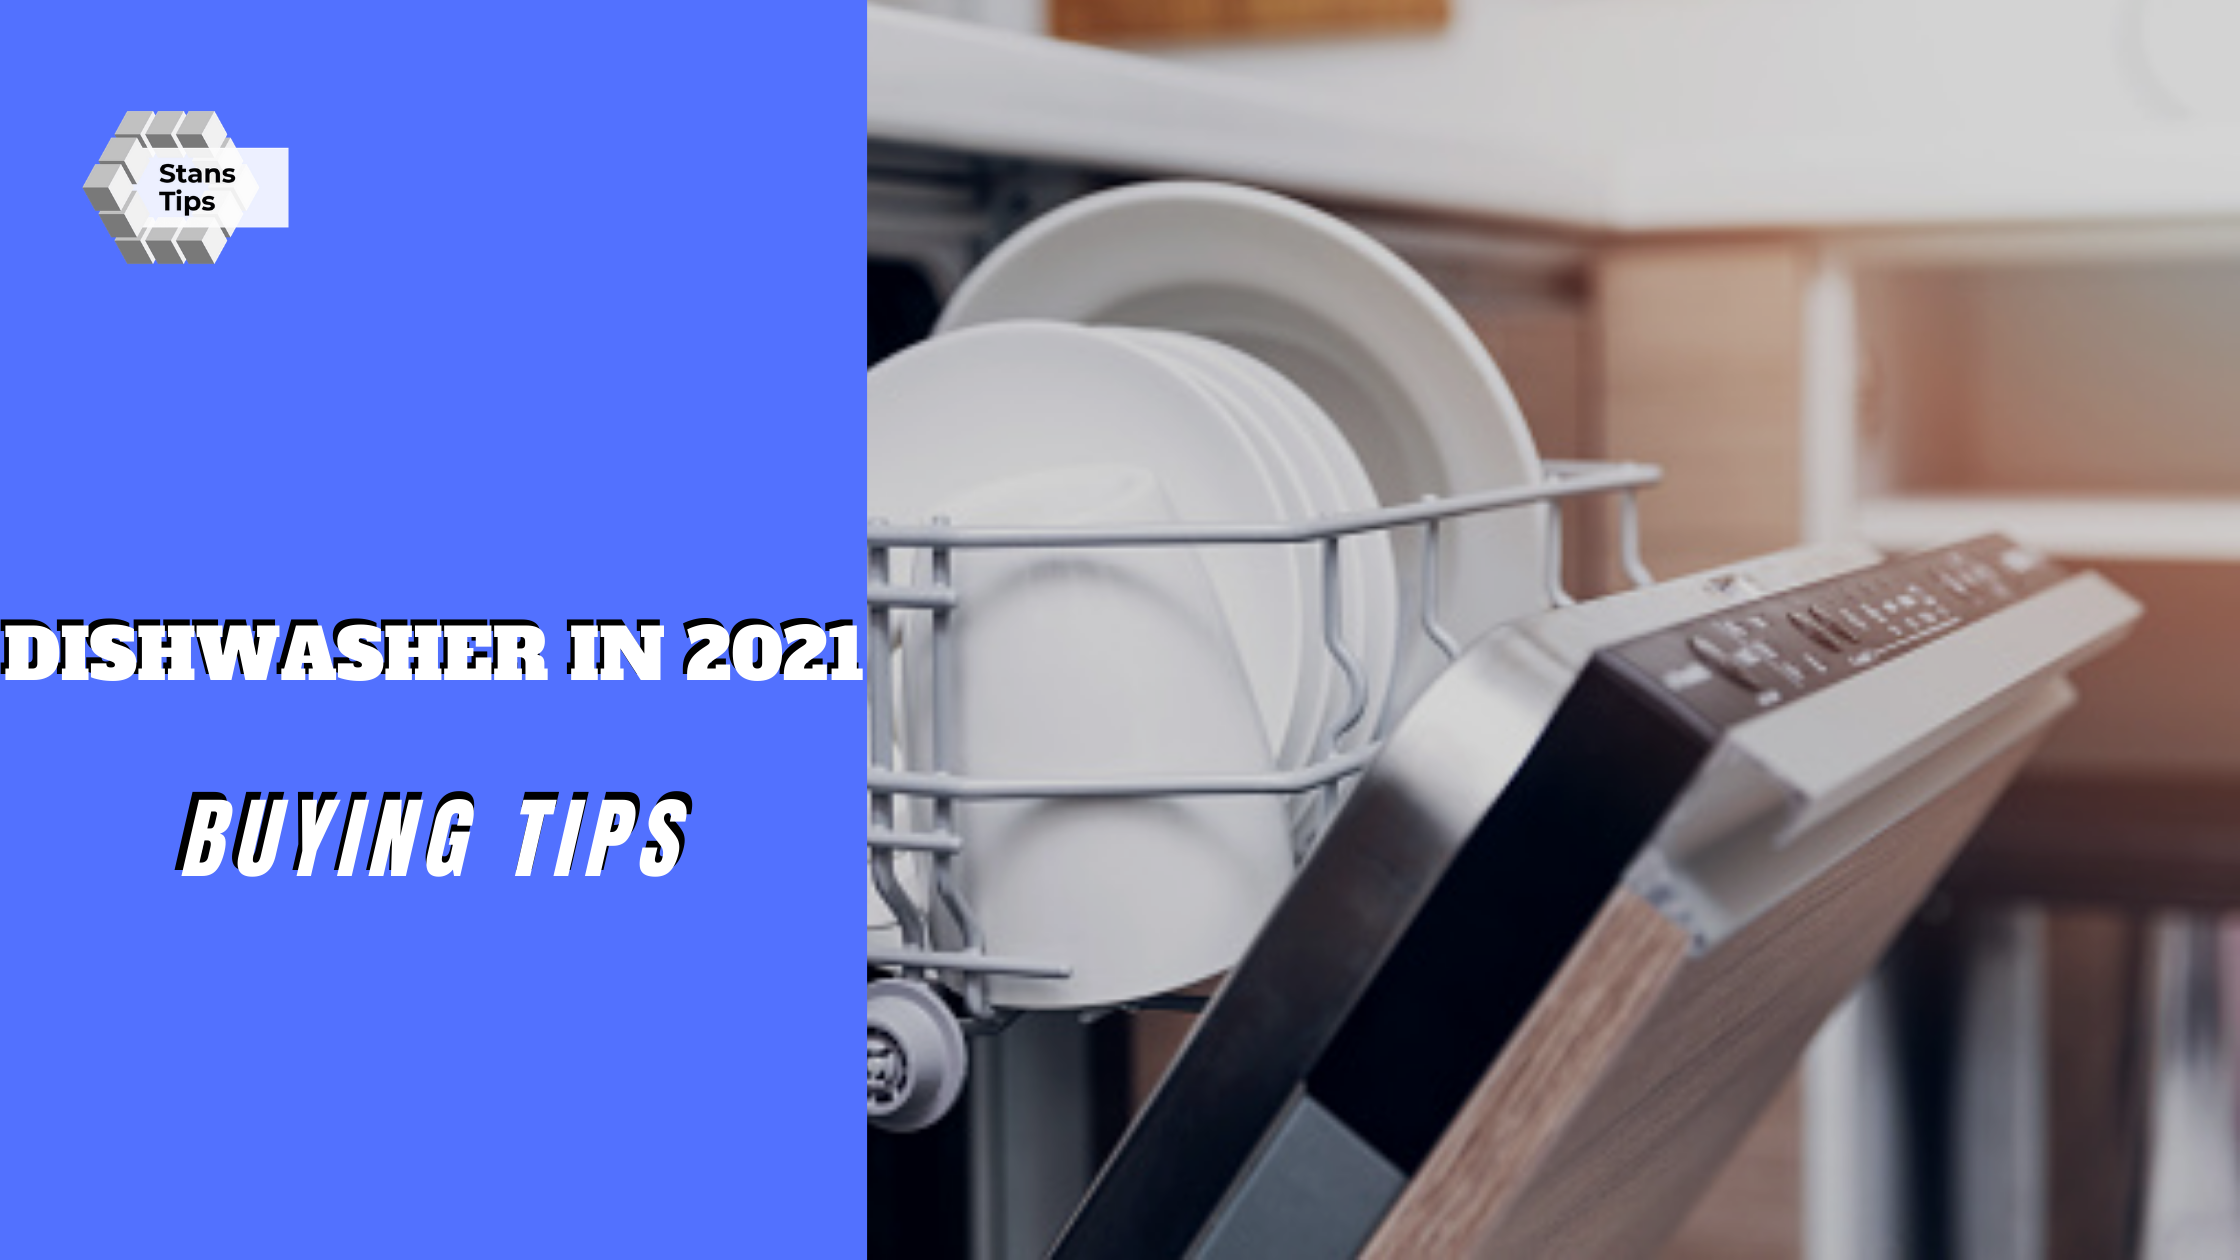 Dishwasher buying tips in 2021